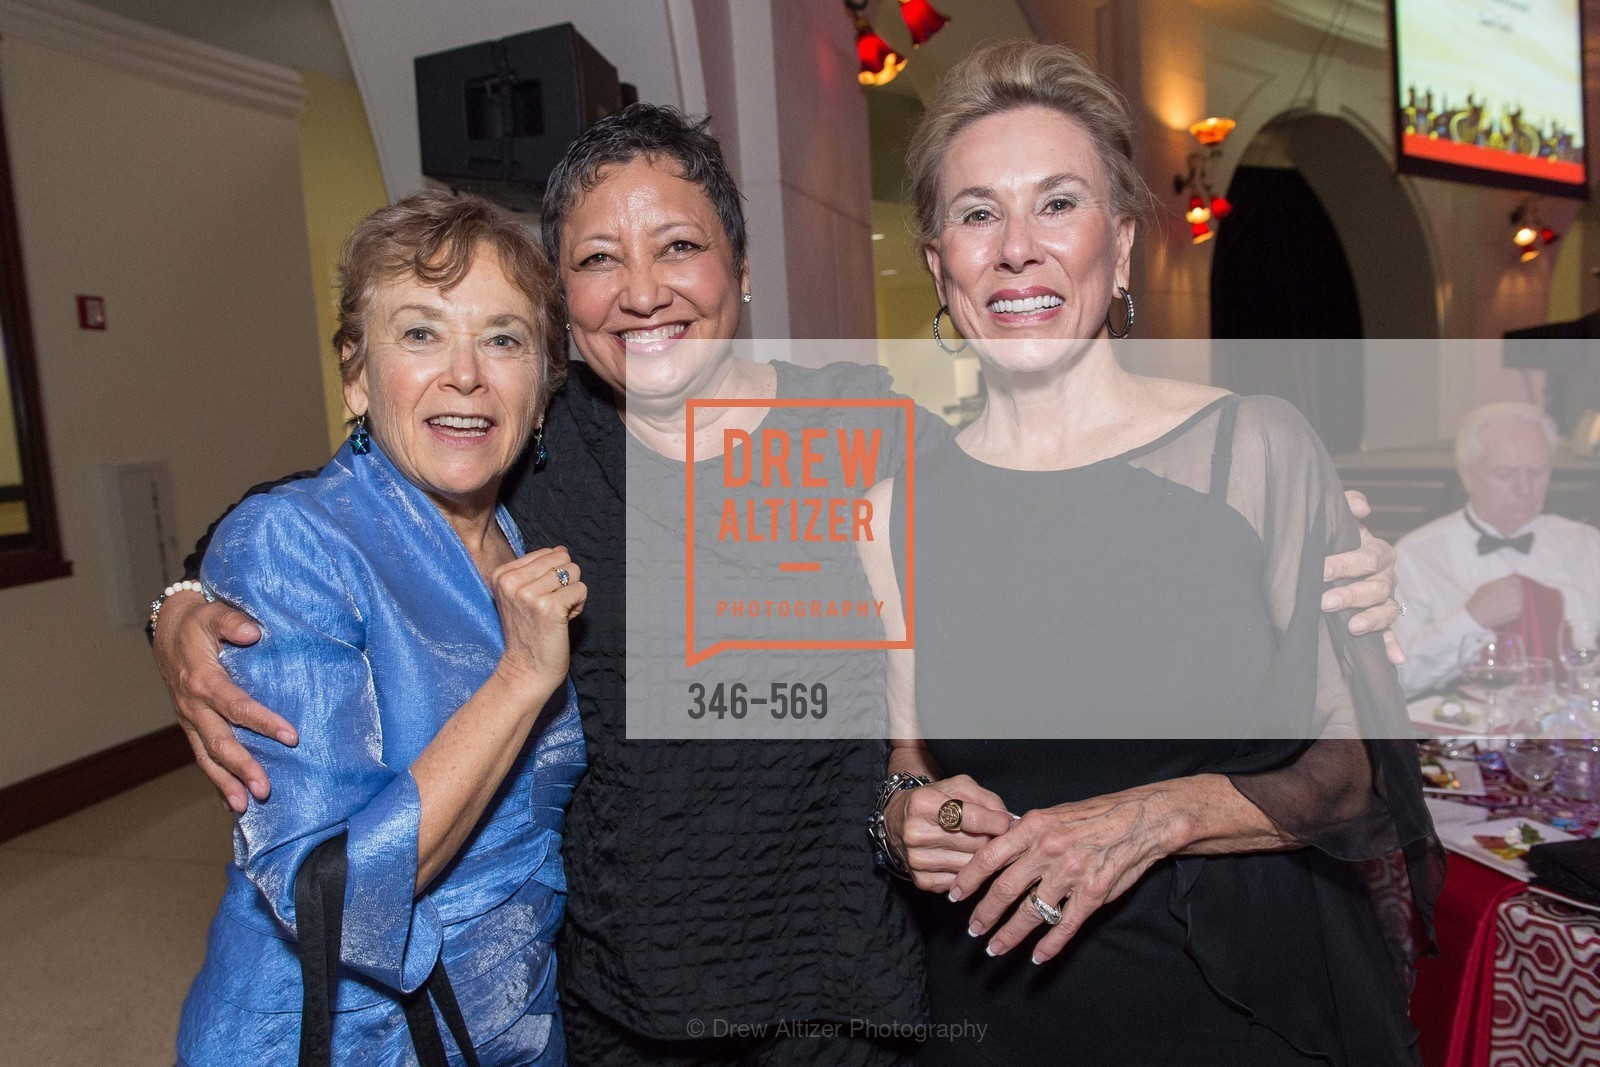 Sheila Jordan, Vctoria Jones, Hilda Elmore, CHABOT Science Center STARLIGHT GALA, US, September 20th, 2014,Drew Altizer, Drew Altizer Photography, full-service agency, private events, San Francisco photographer, photographer california